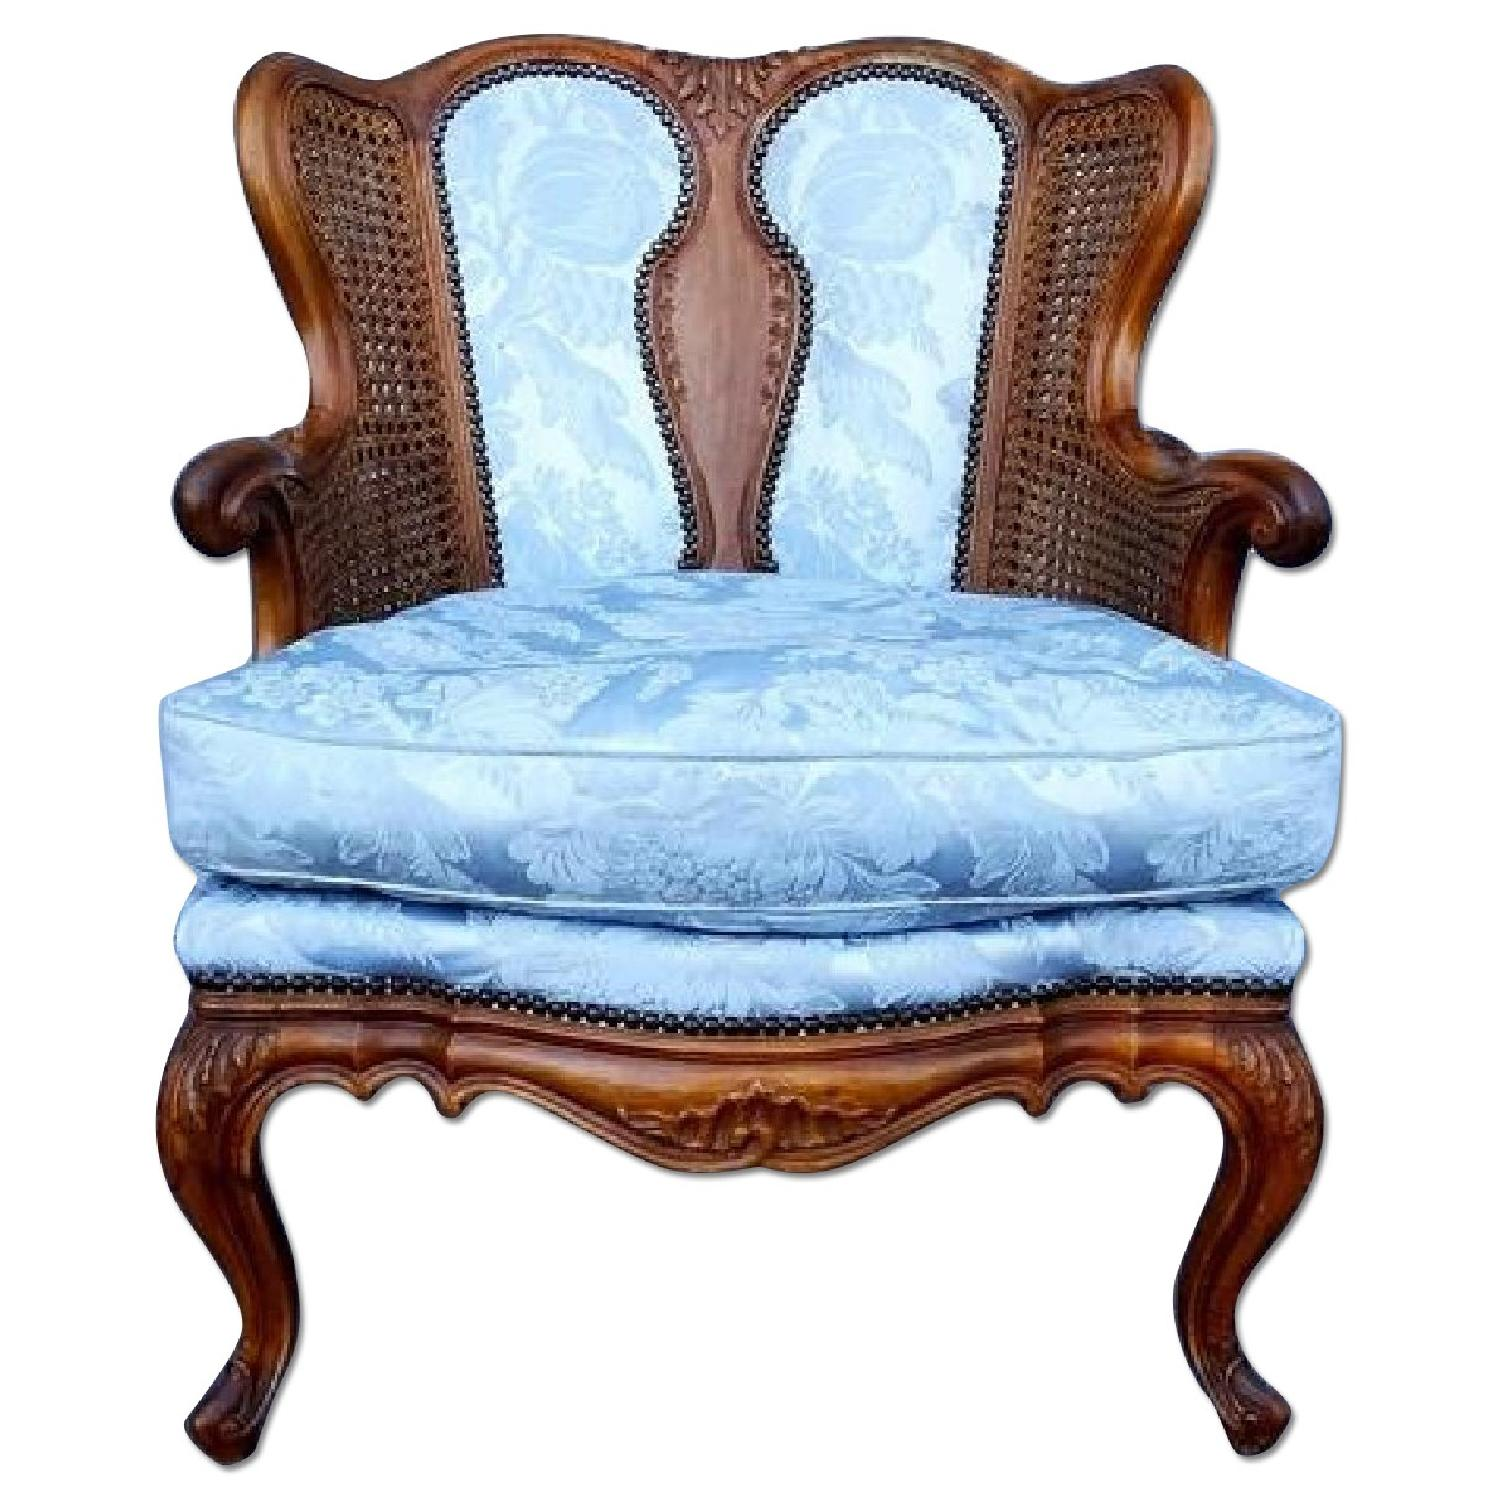 antique french louisxvi style rococo bergere fauteuil aptdeco. Black Bedroom Furniture Sets. Home Design Ideas